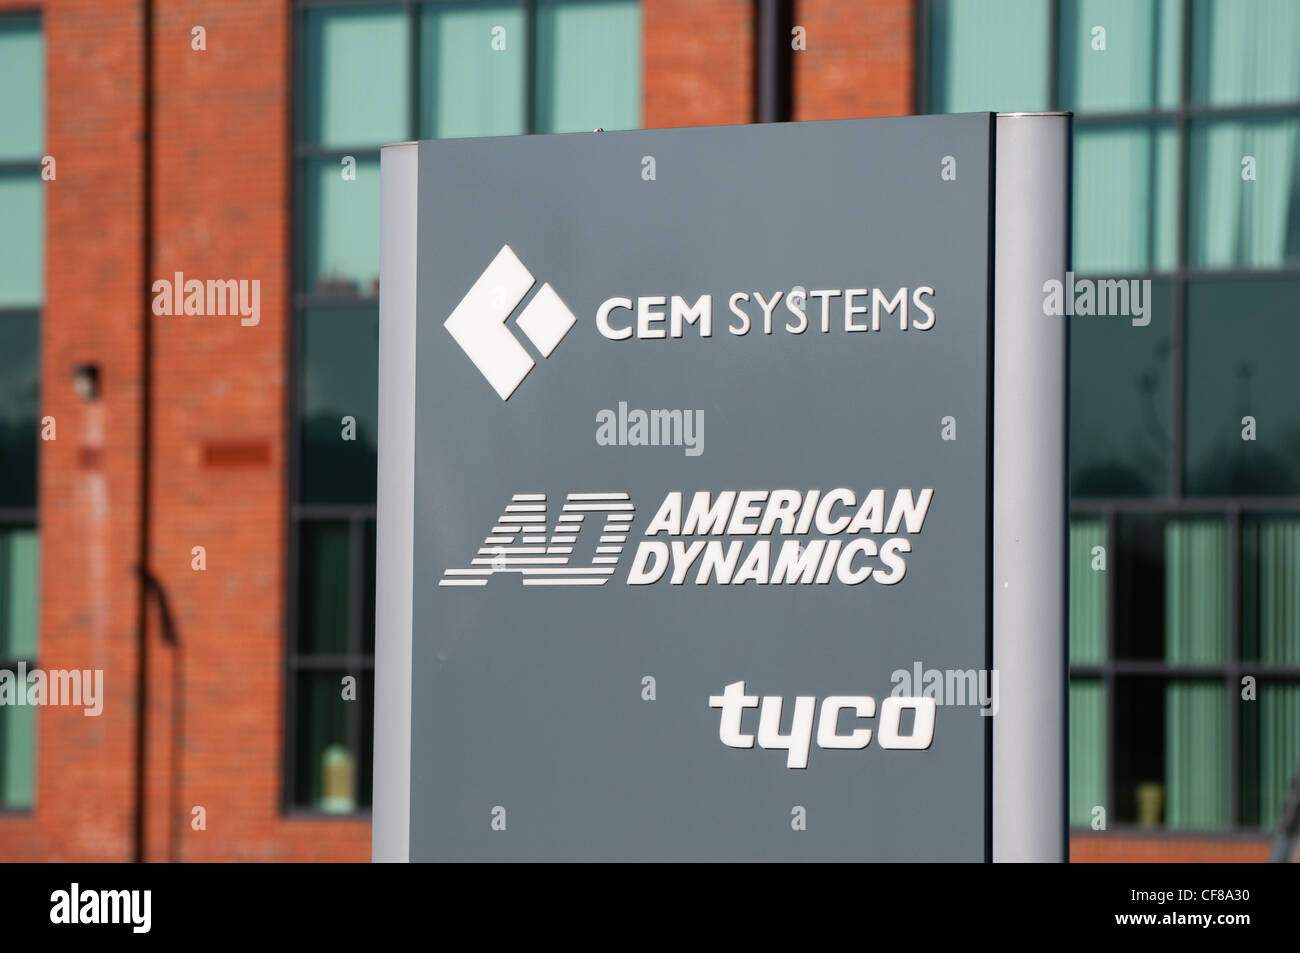 Sign for CEM Systems, American Dynamics and Tyco - Stock Image